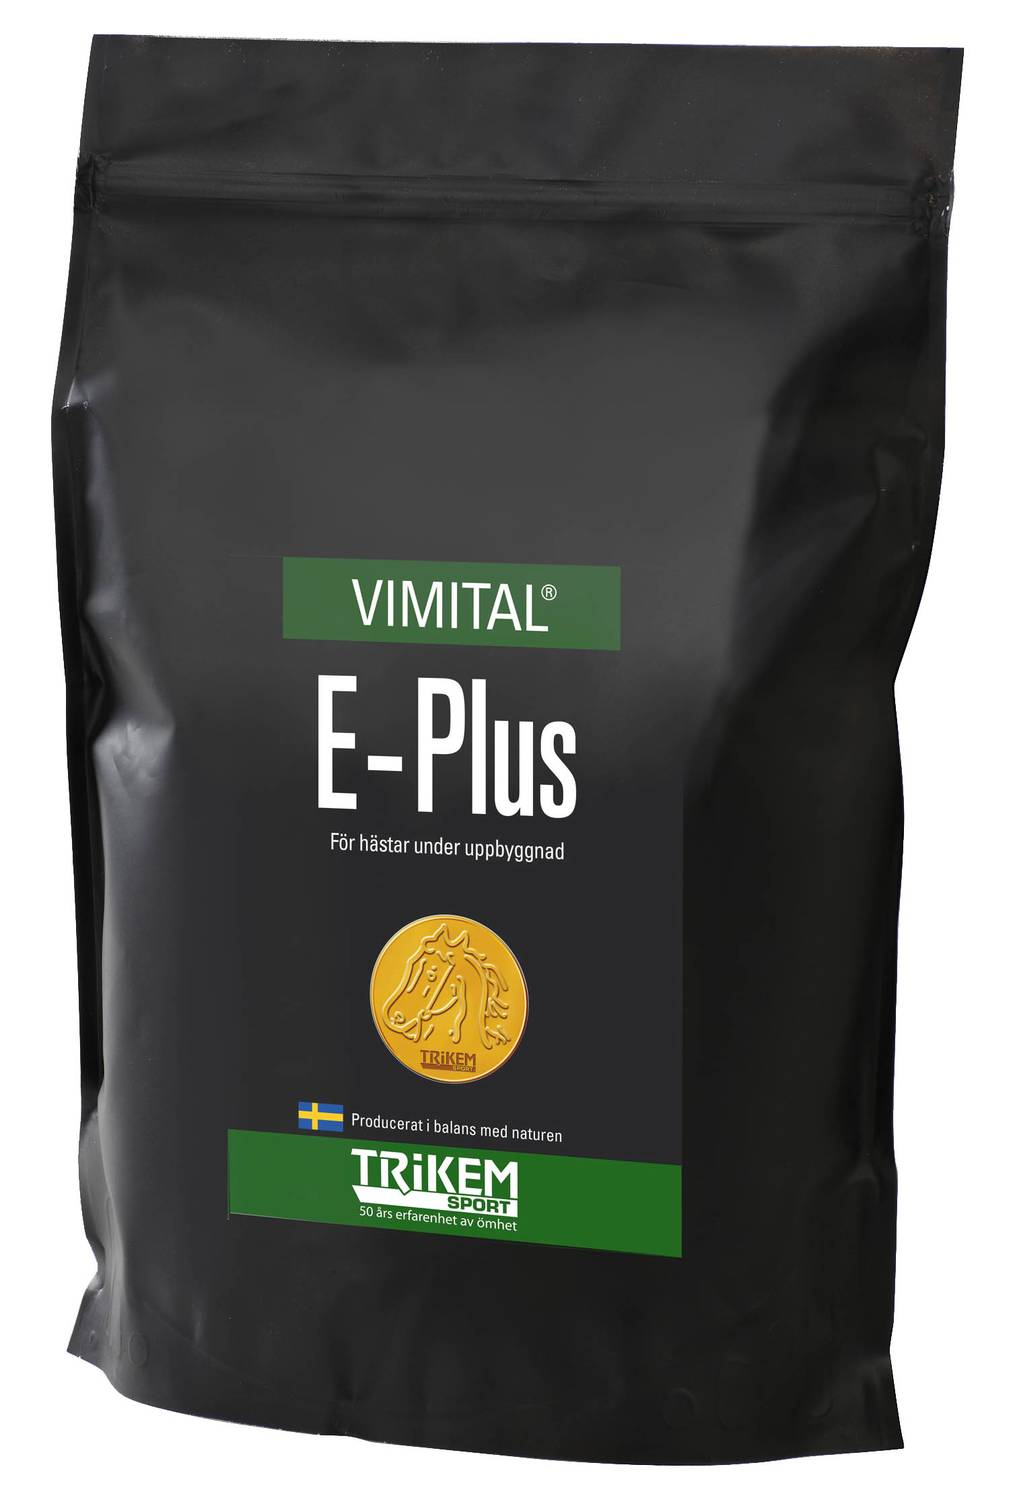 Vimital E-Plus